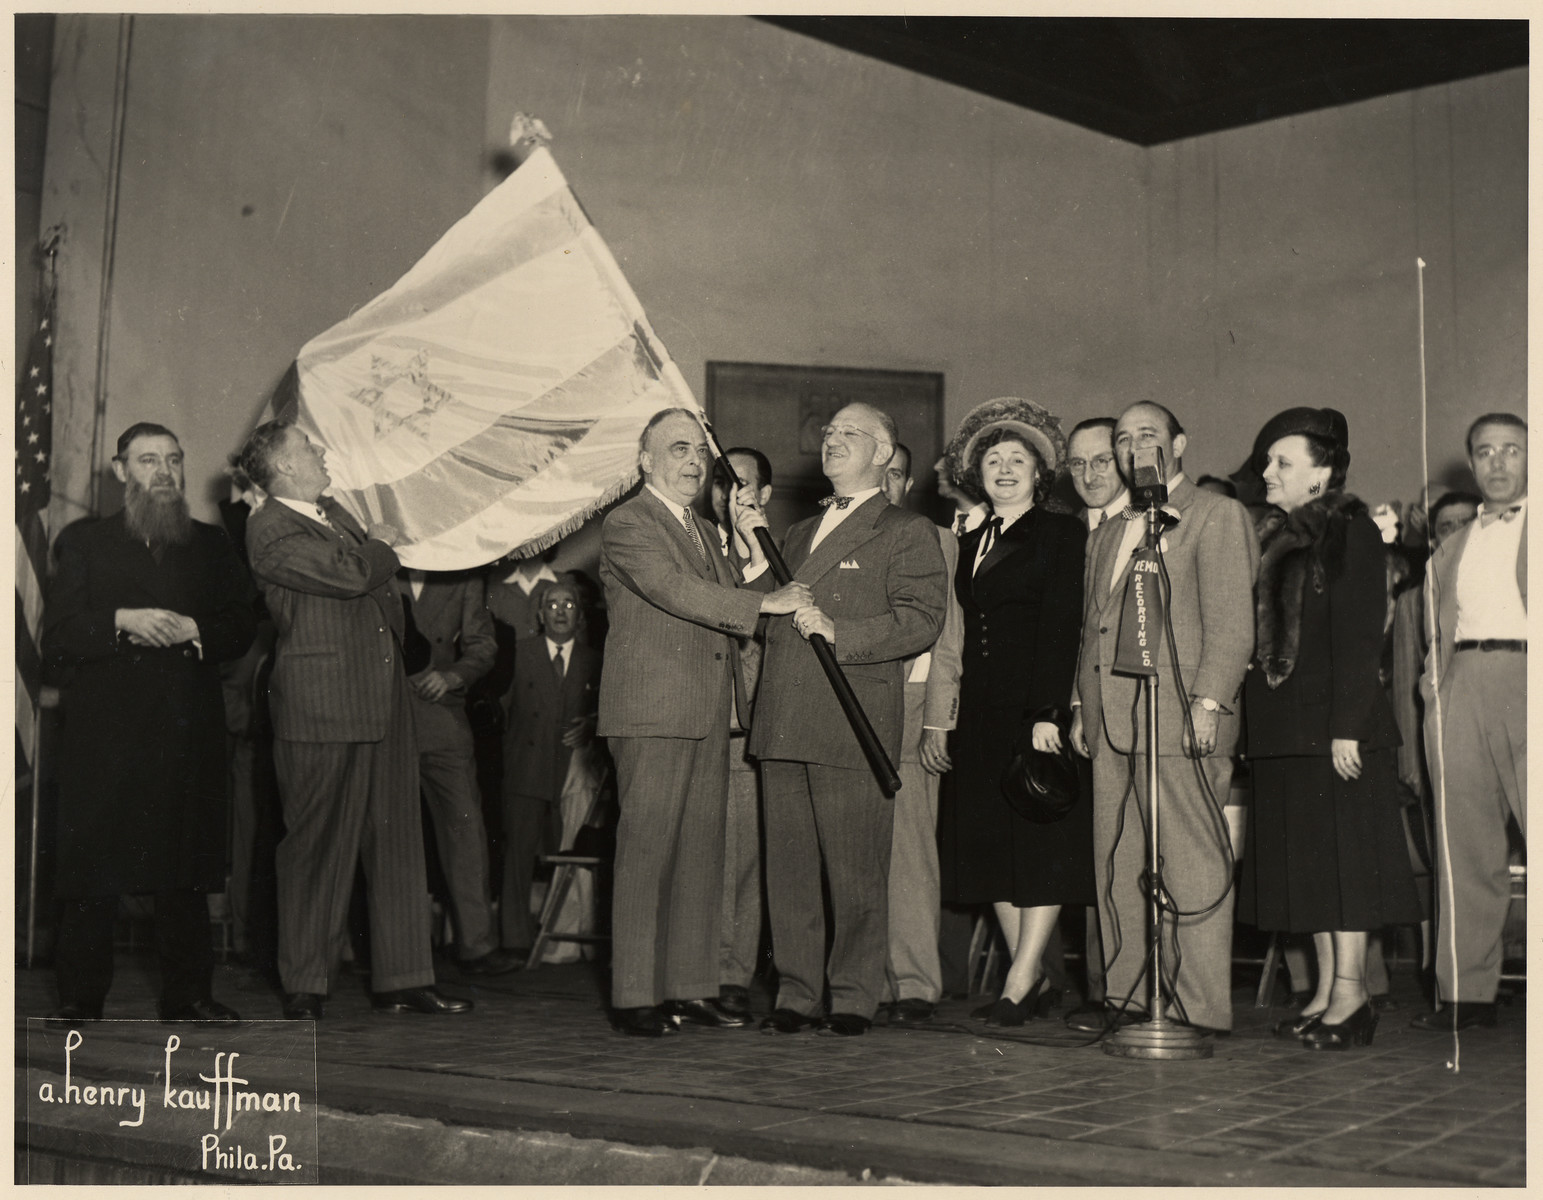 The  Israeli flag is held aloft at a ceremony in Philadelphia, held shortly after the Israeli declaration of Independence.  Among those pictured are (left to right):  George Louis (holding the flag), Philadelphia Mayor Bernard Samuel and Judge Levinthal (both holding the flag pole), Lawrence G. Horowitz (the donor's grandfather, behind Judge Levinthal), and Ann Sebotnik (the donor's aunt).